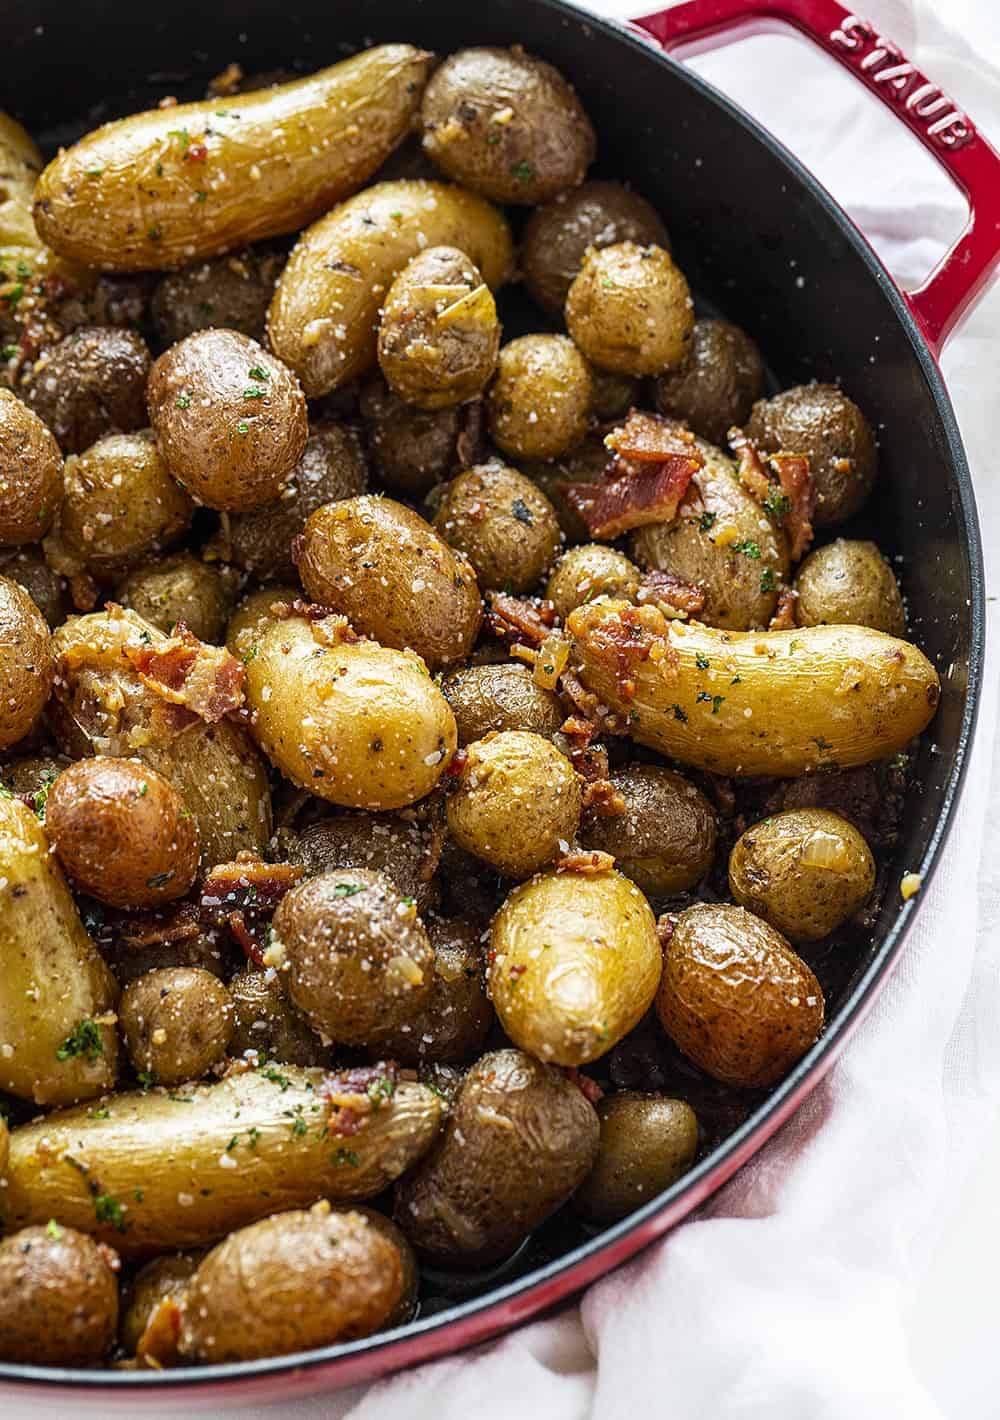 Roasted Potatoes with Bacon in a Red Skillet